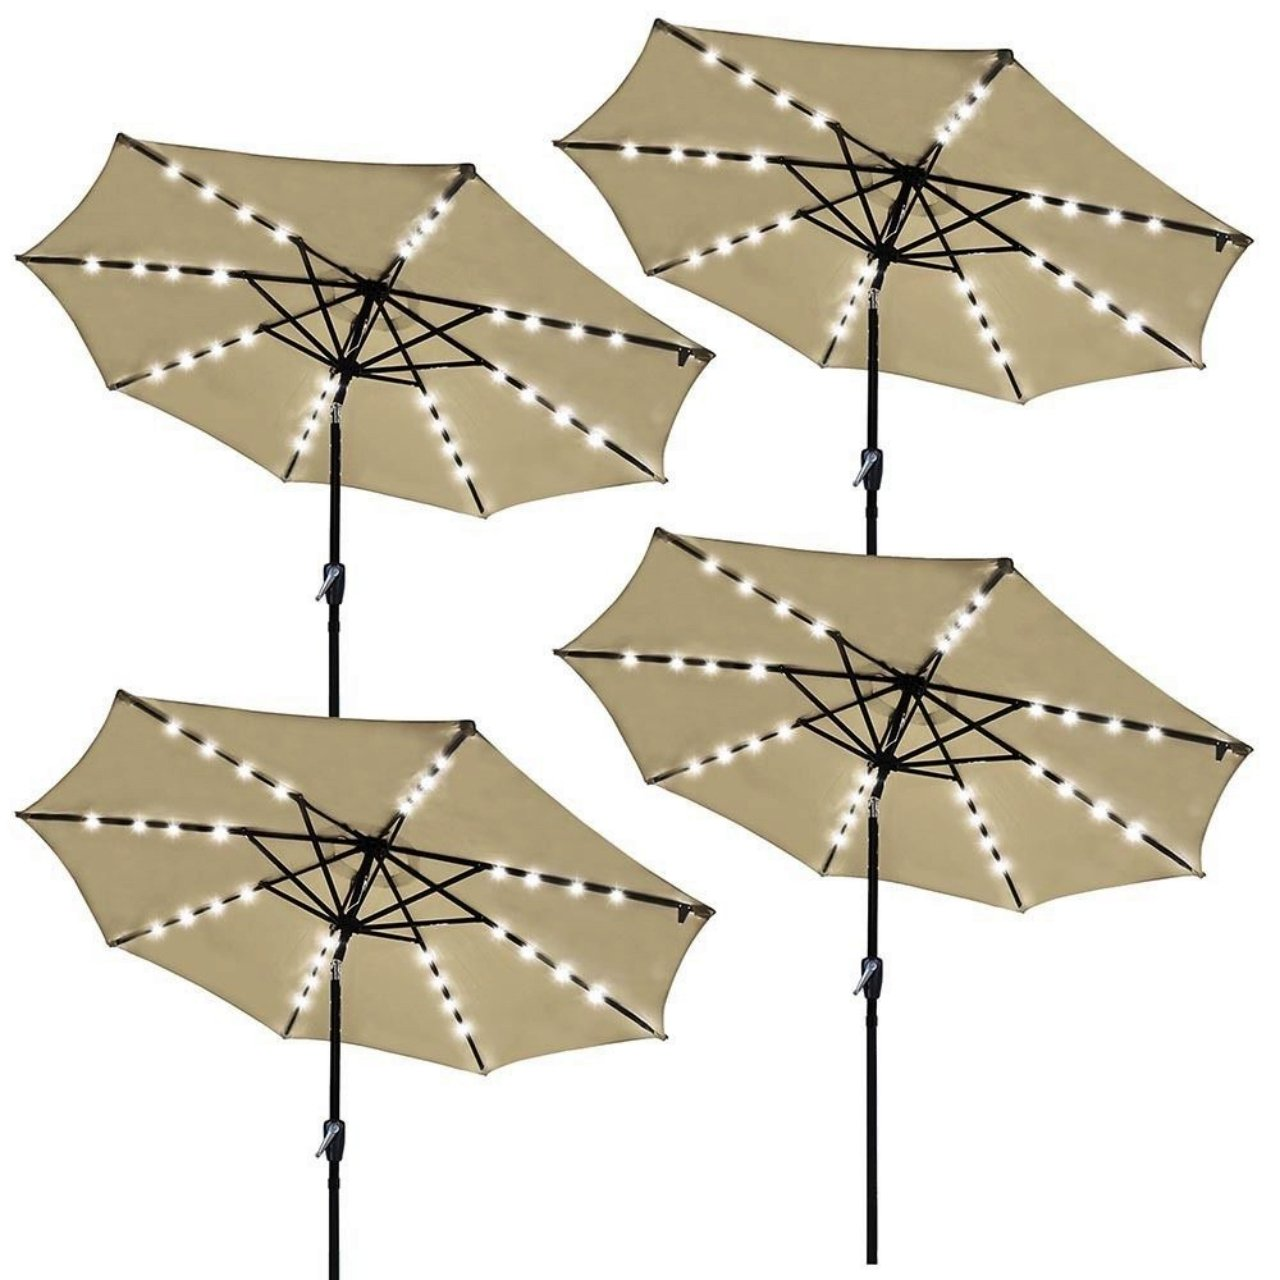 9ft Outdoor Patio Solar Power LED Aluminium Umbrella Sunshade UV Blocking Hand-Crank Tilt - Set of 4 Beige #931